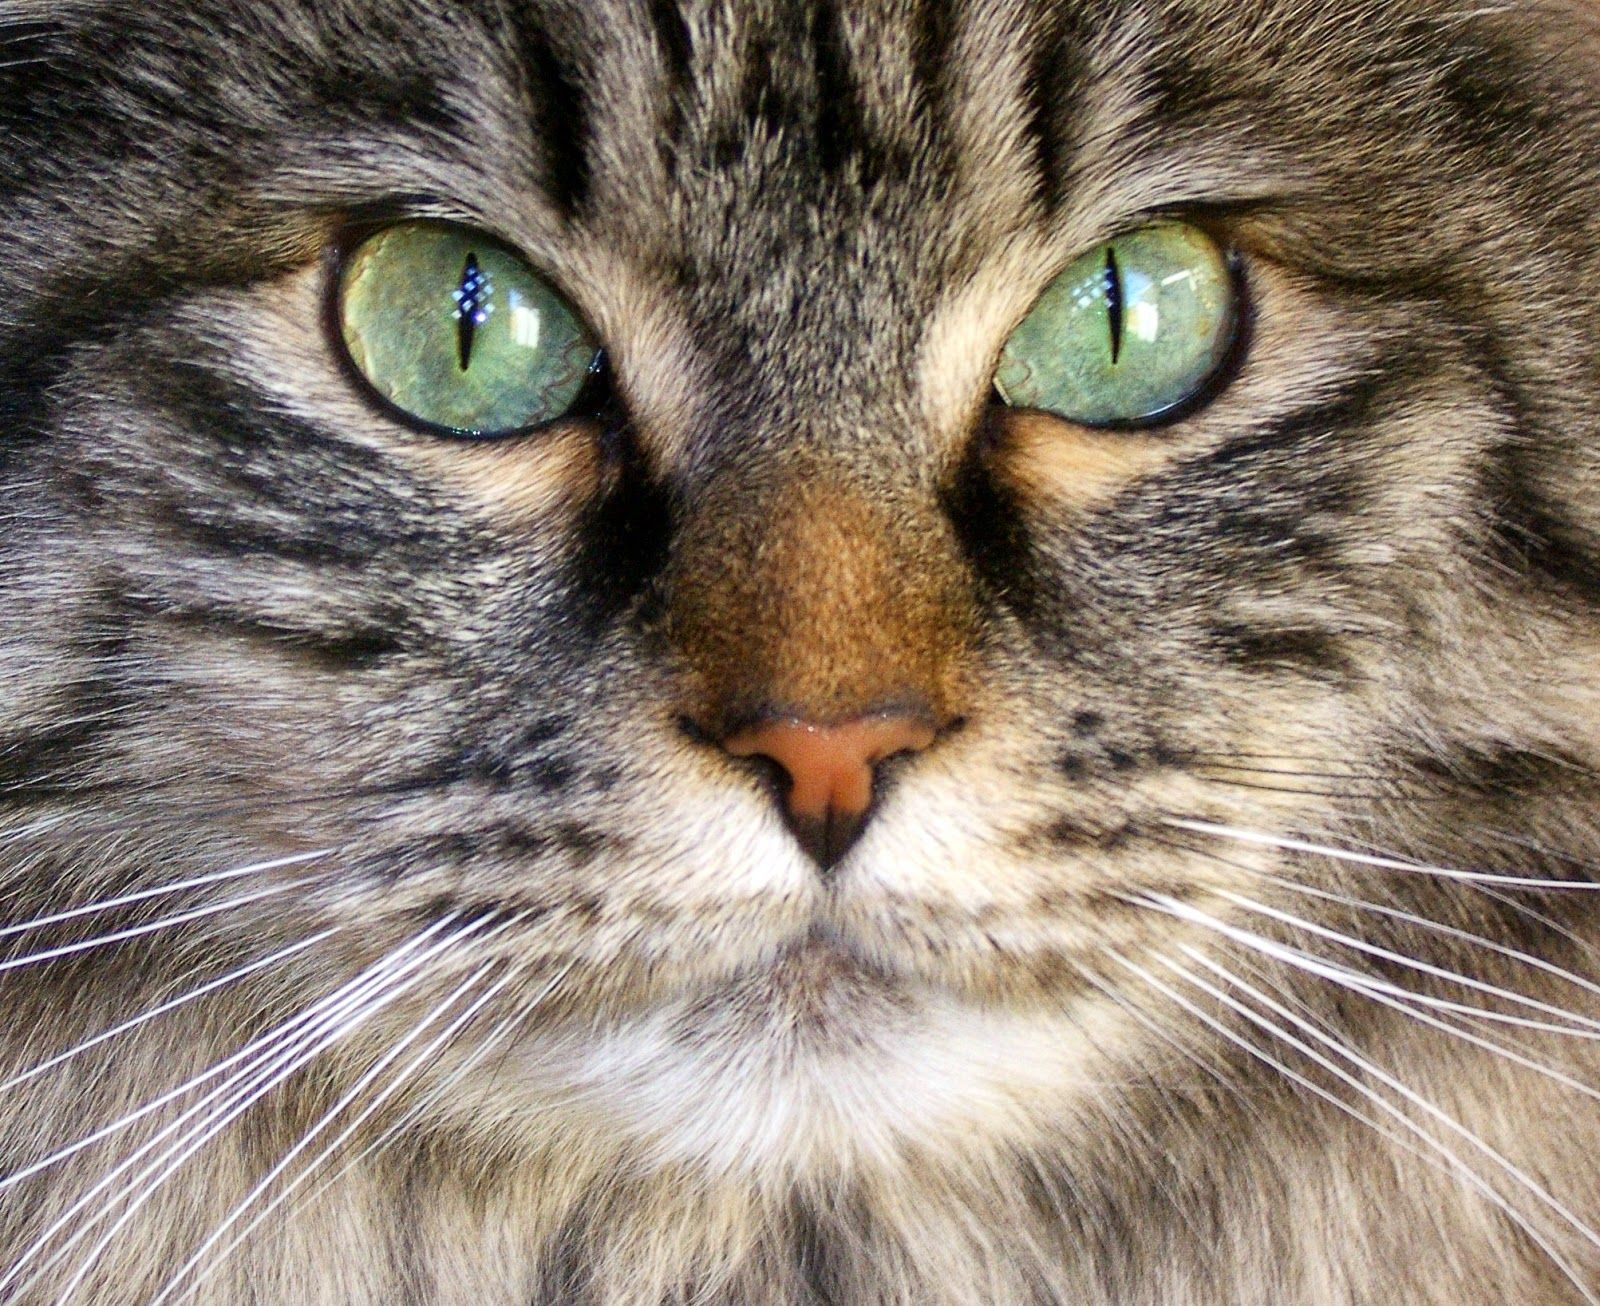 Cat S Eyes Change Color During Kittenhood If Eye Color Changes Come Later In Life It Can Be A Sign That Your Cat Is Facing Oth Kitten Eyes Cats Cat Eye Colors